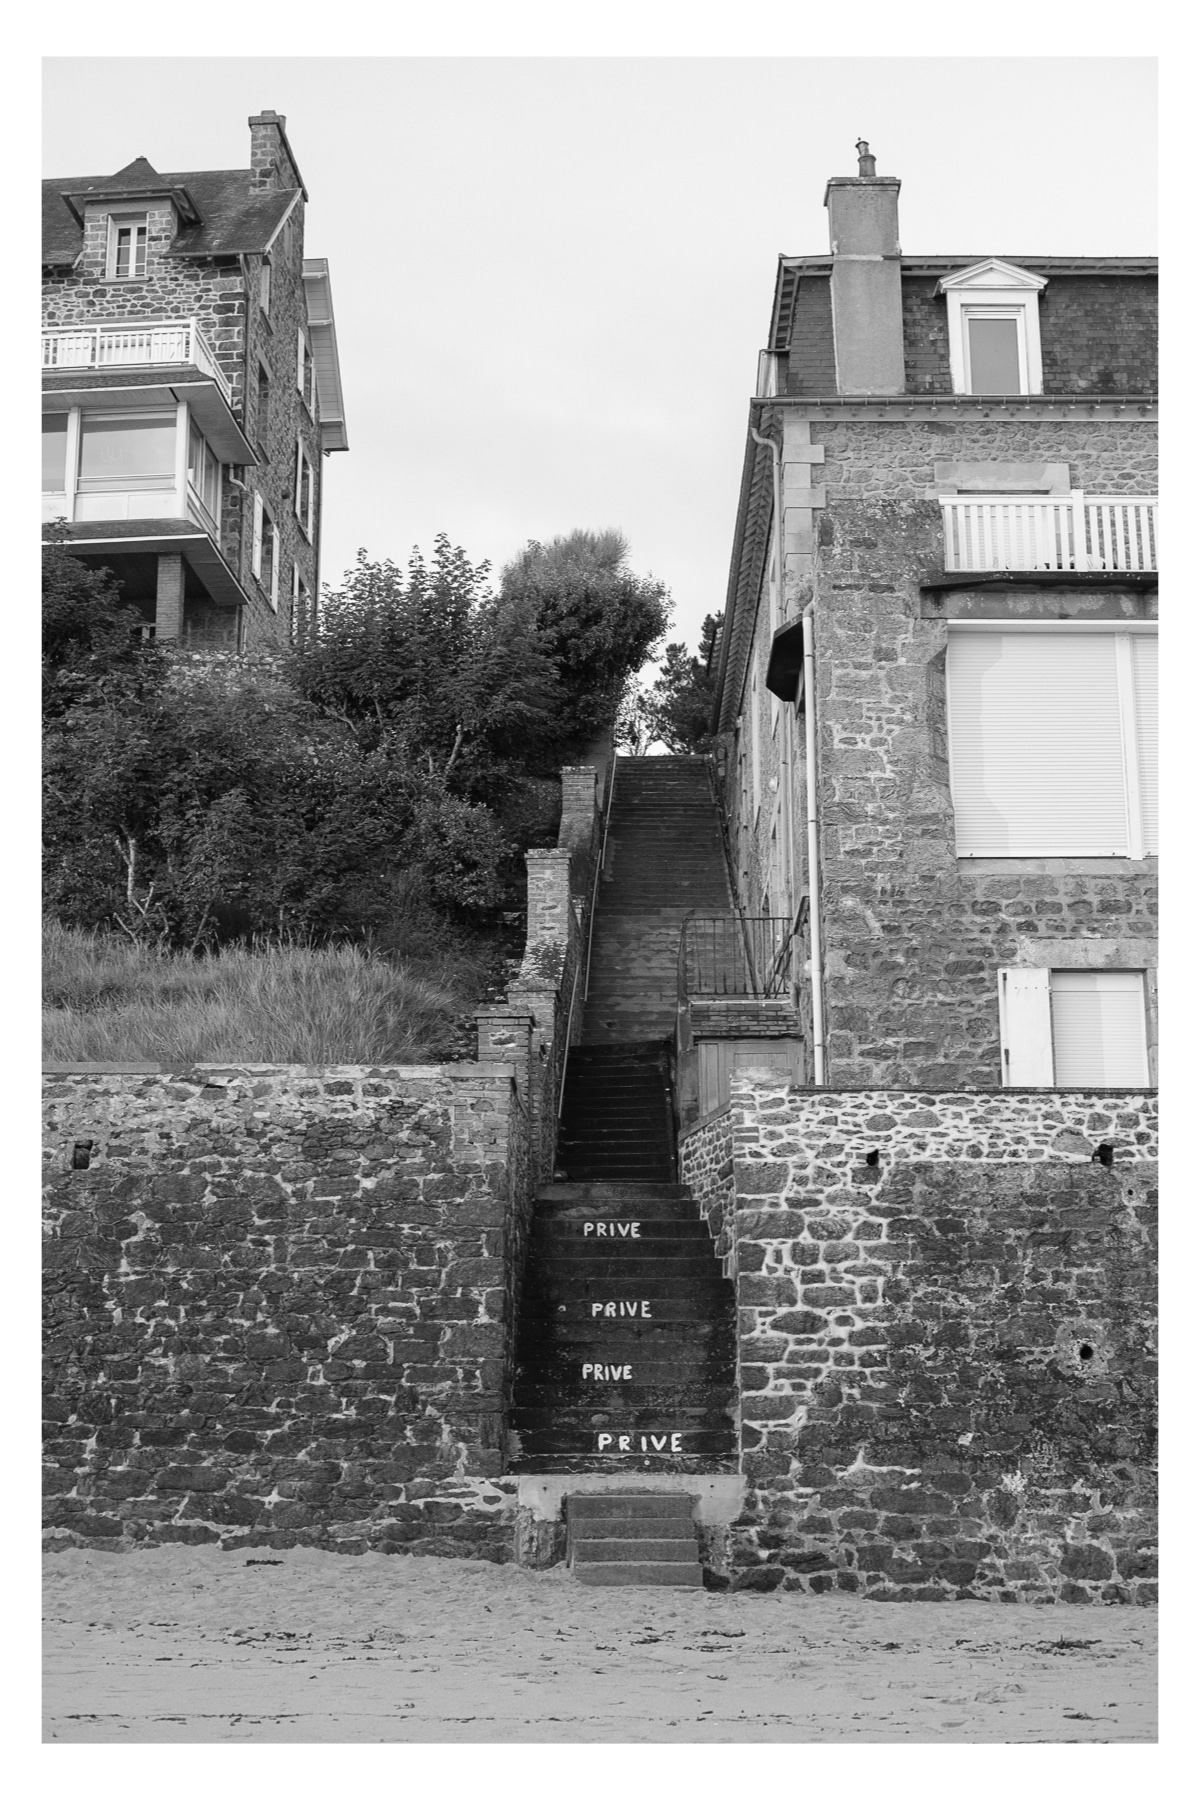 Plage Saint-Enogat - Steps with Private (Prive) written.